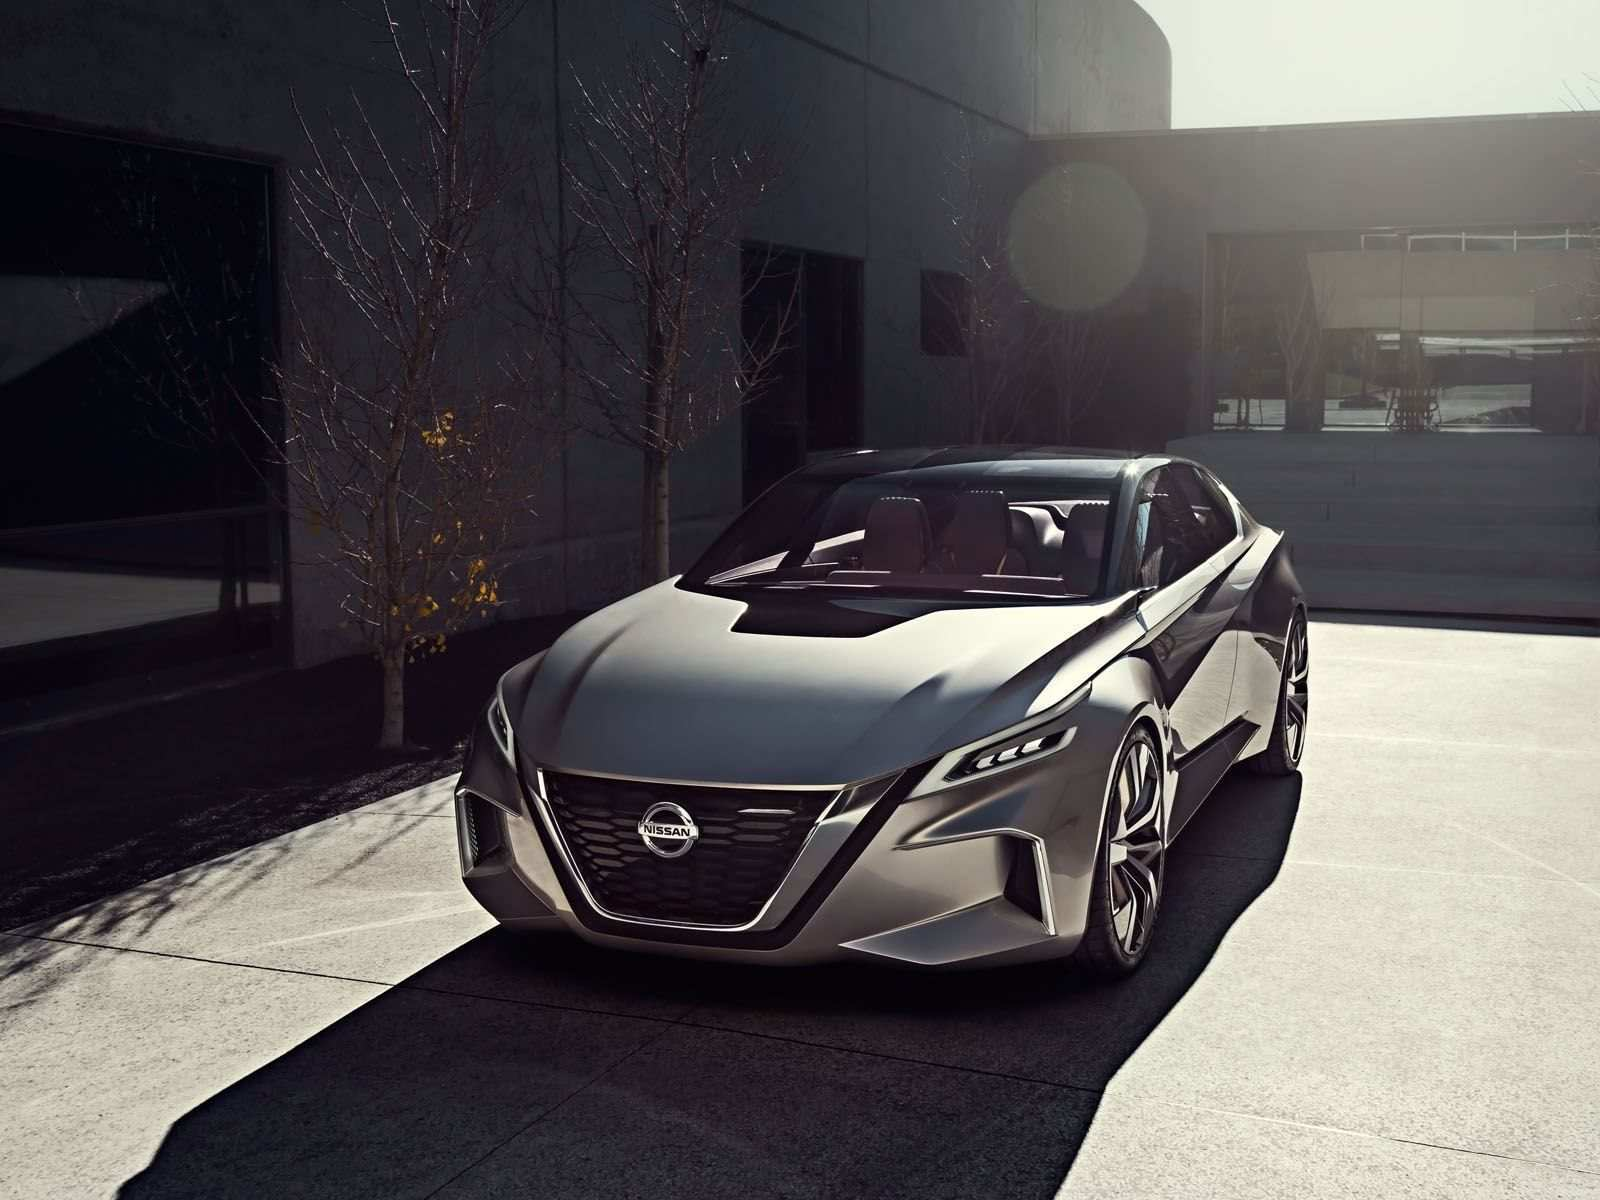 39 Concept of 2019 Nissan Altima Concept Picture for 2019 Nissan Altima Concept